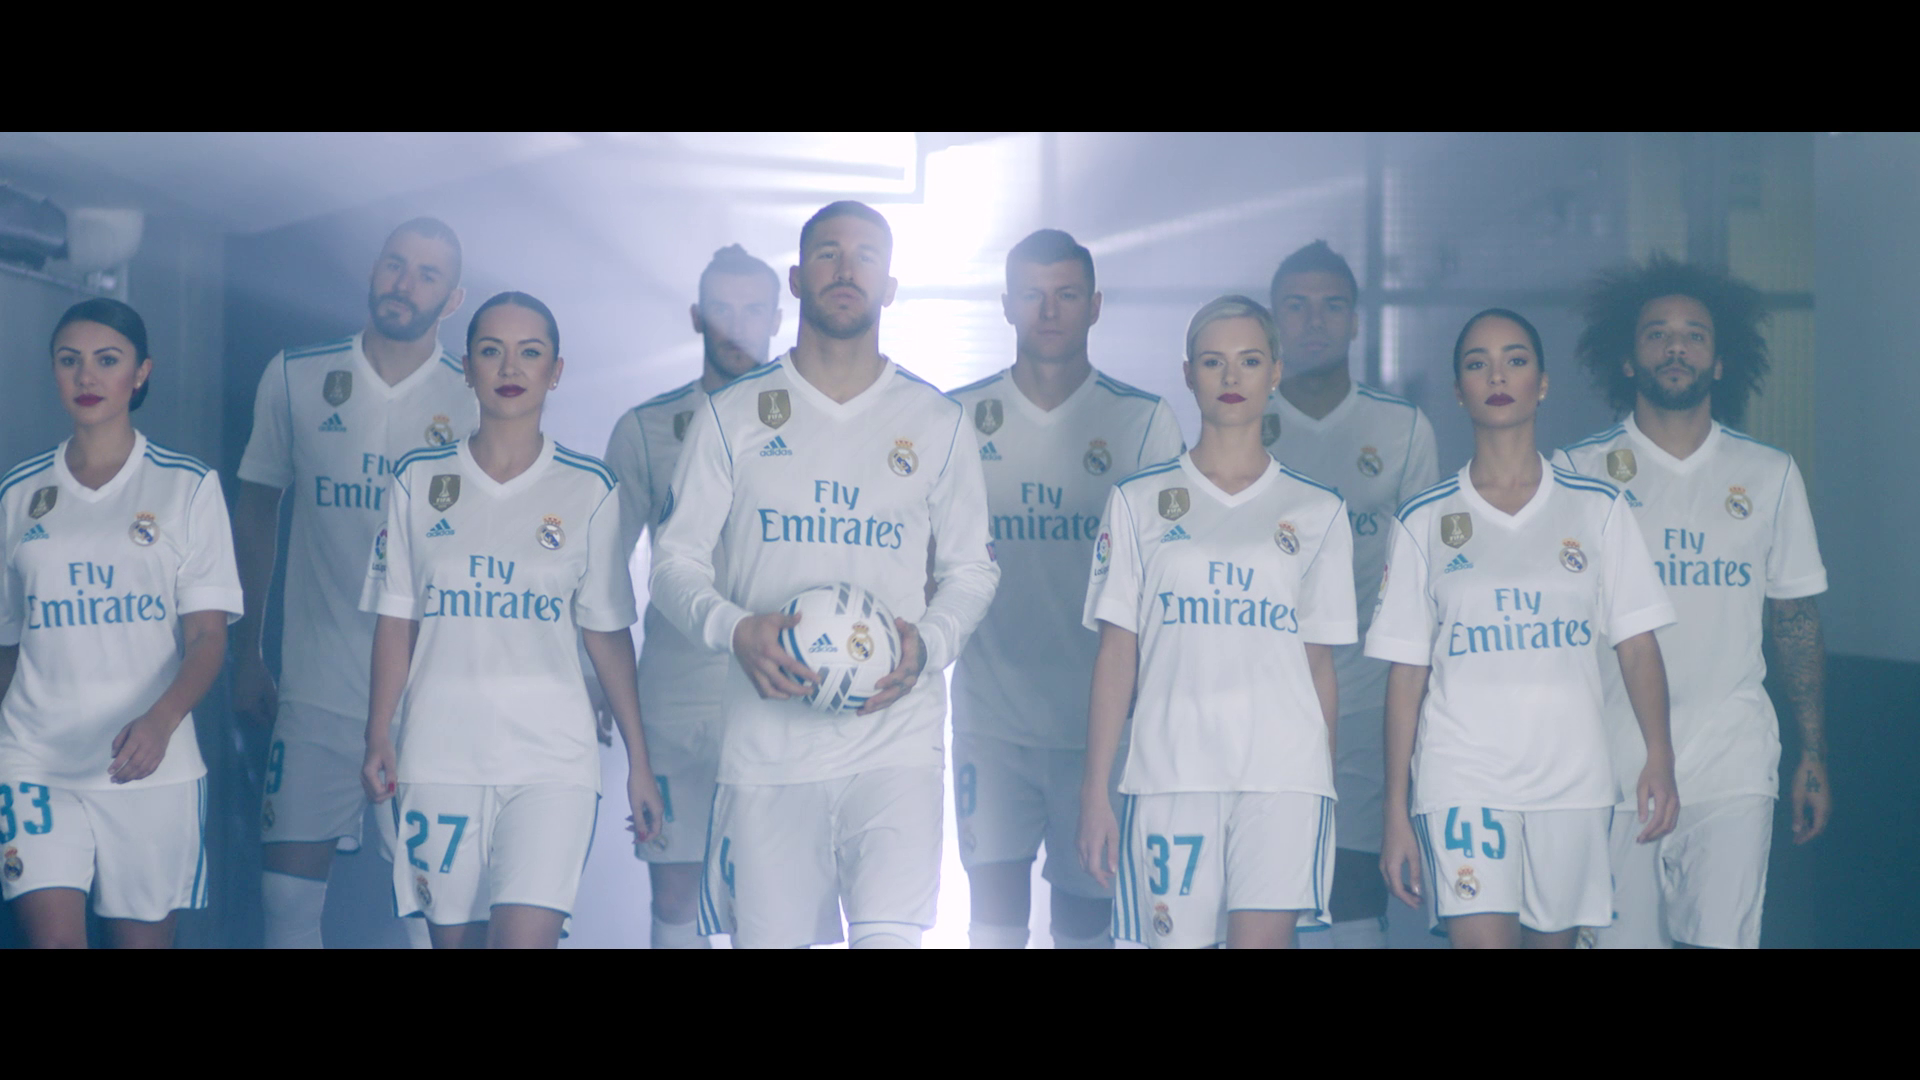 Real_Madrid_team_up_with_Emirates_Cabin_Crew-406642.png